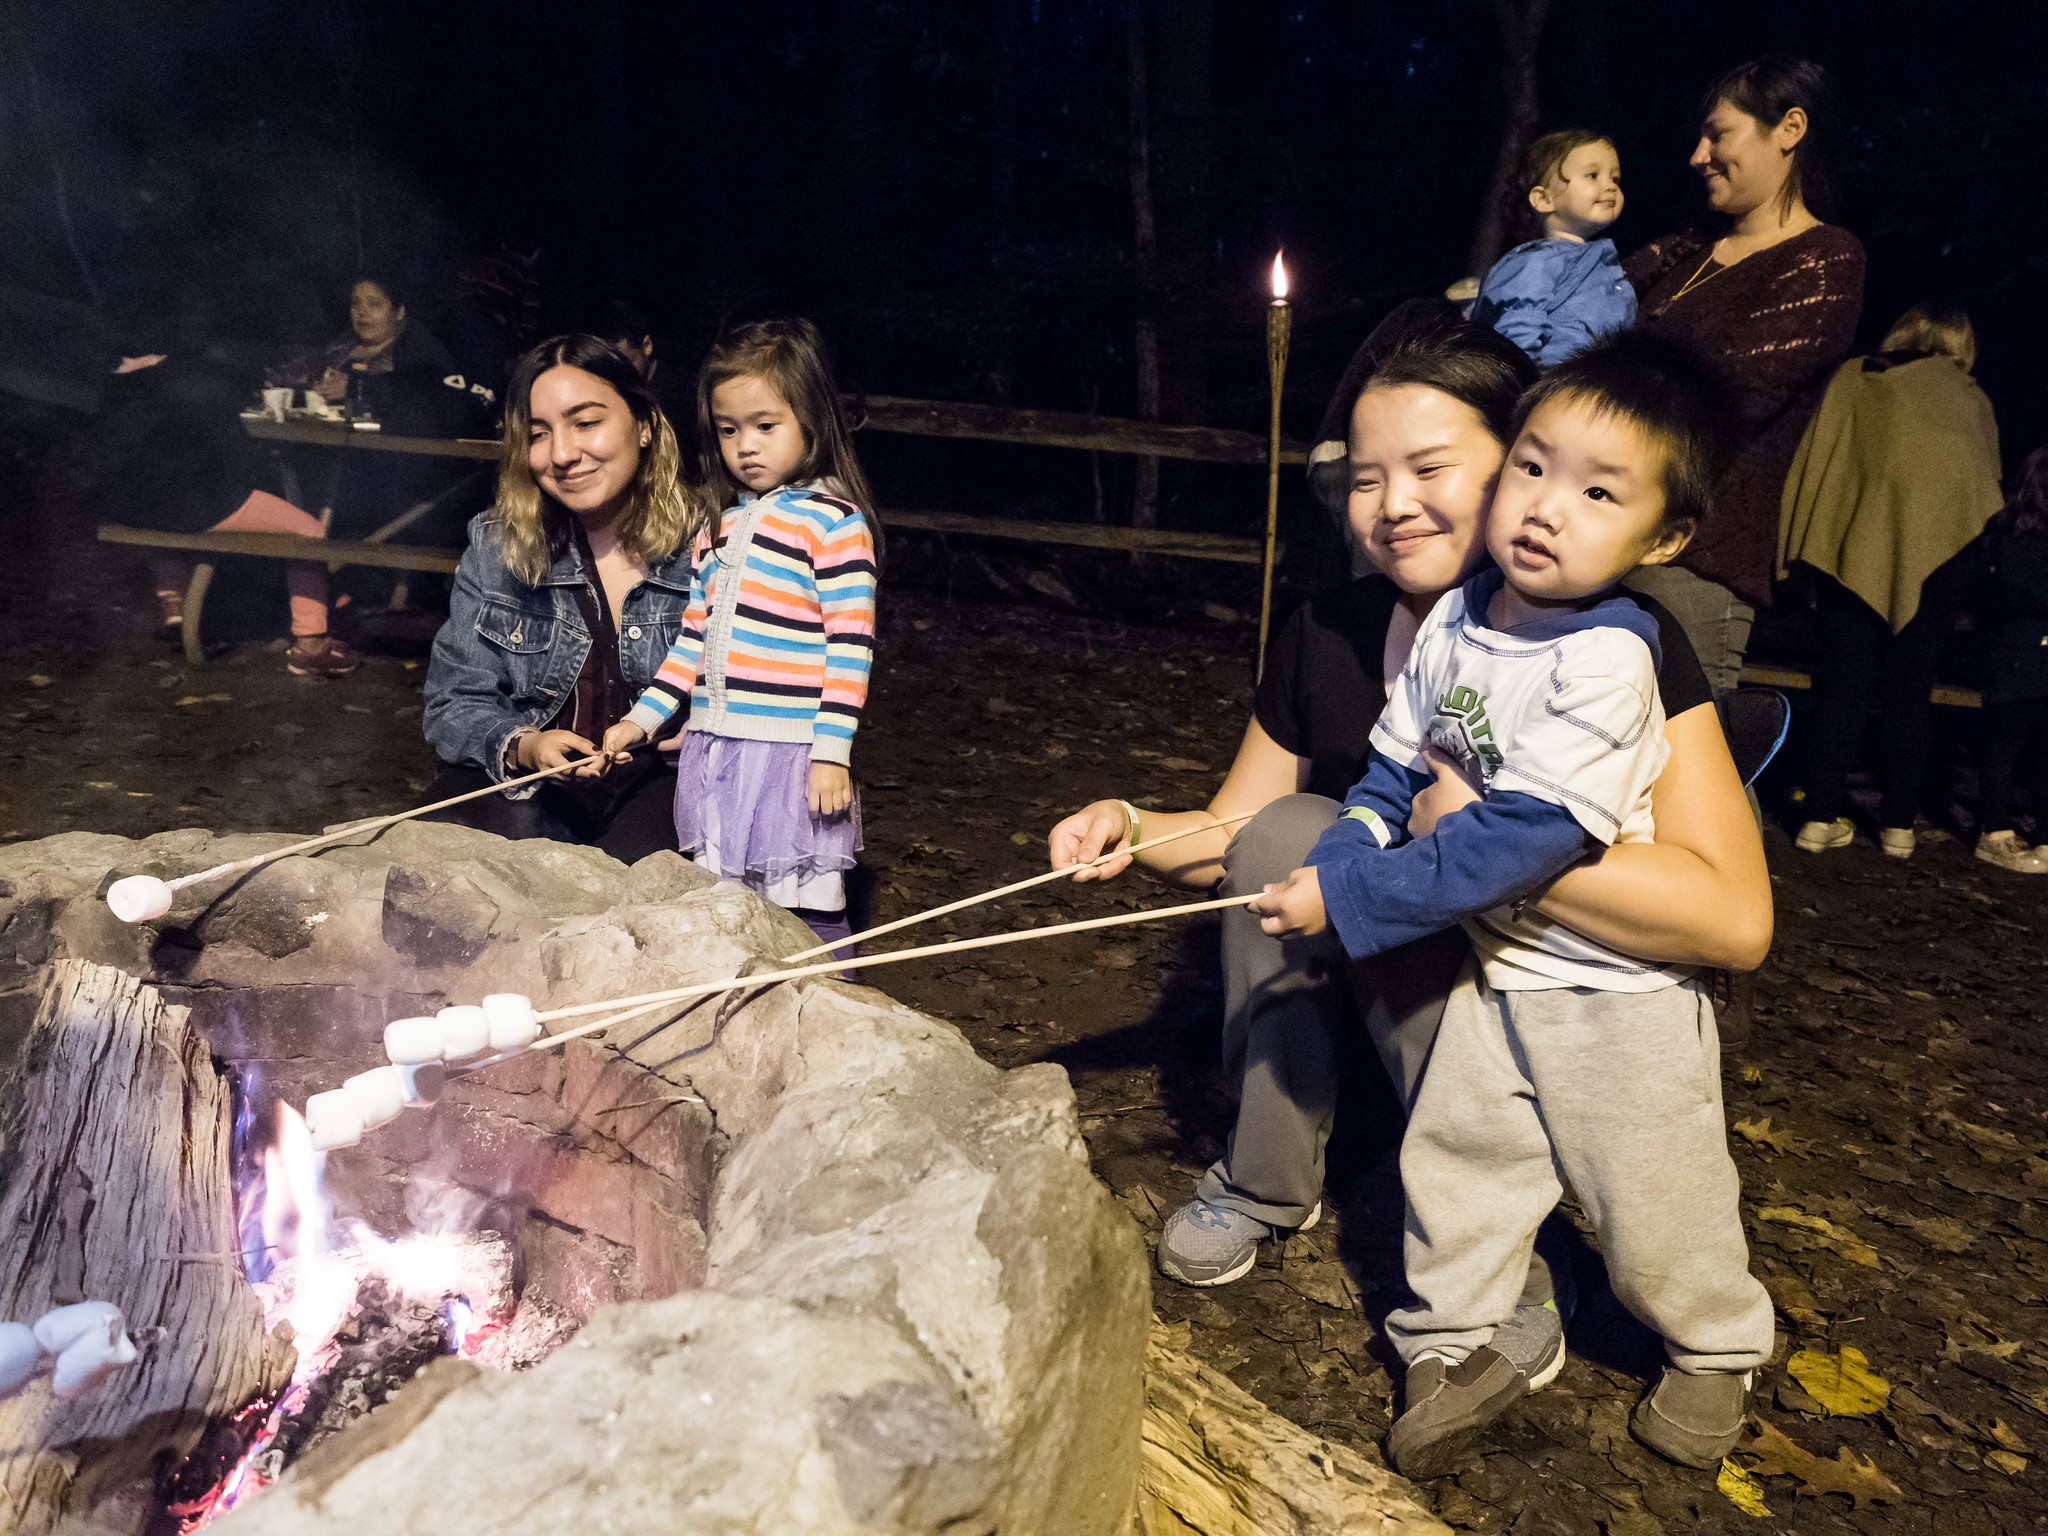 Annual Gourmet S'mores Cook-off